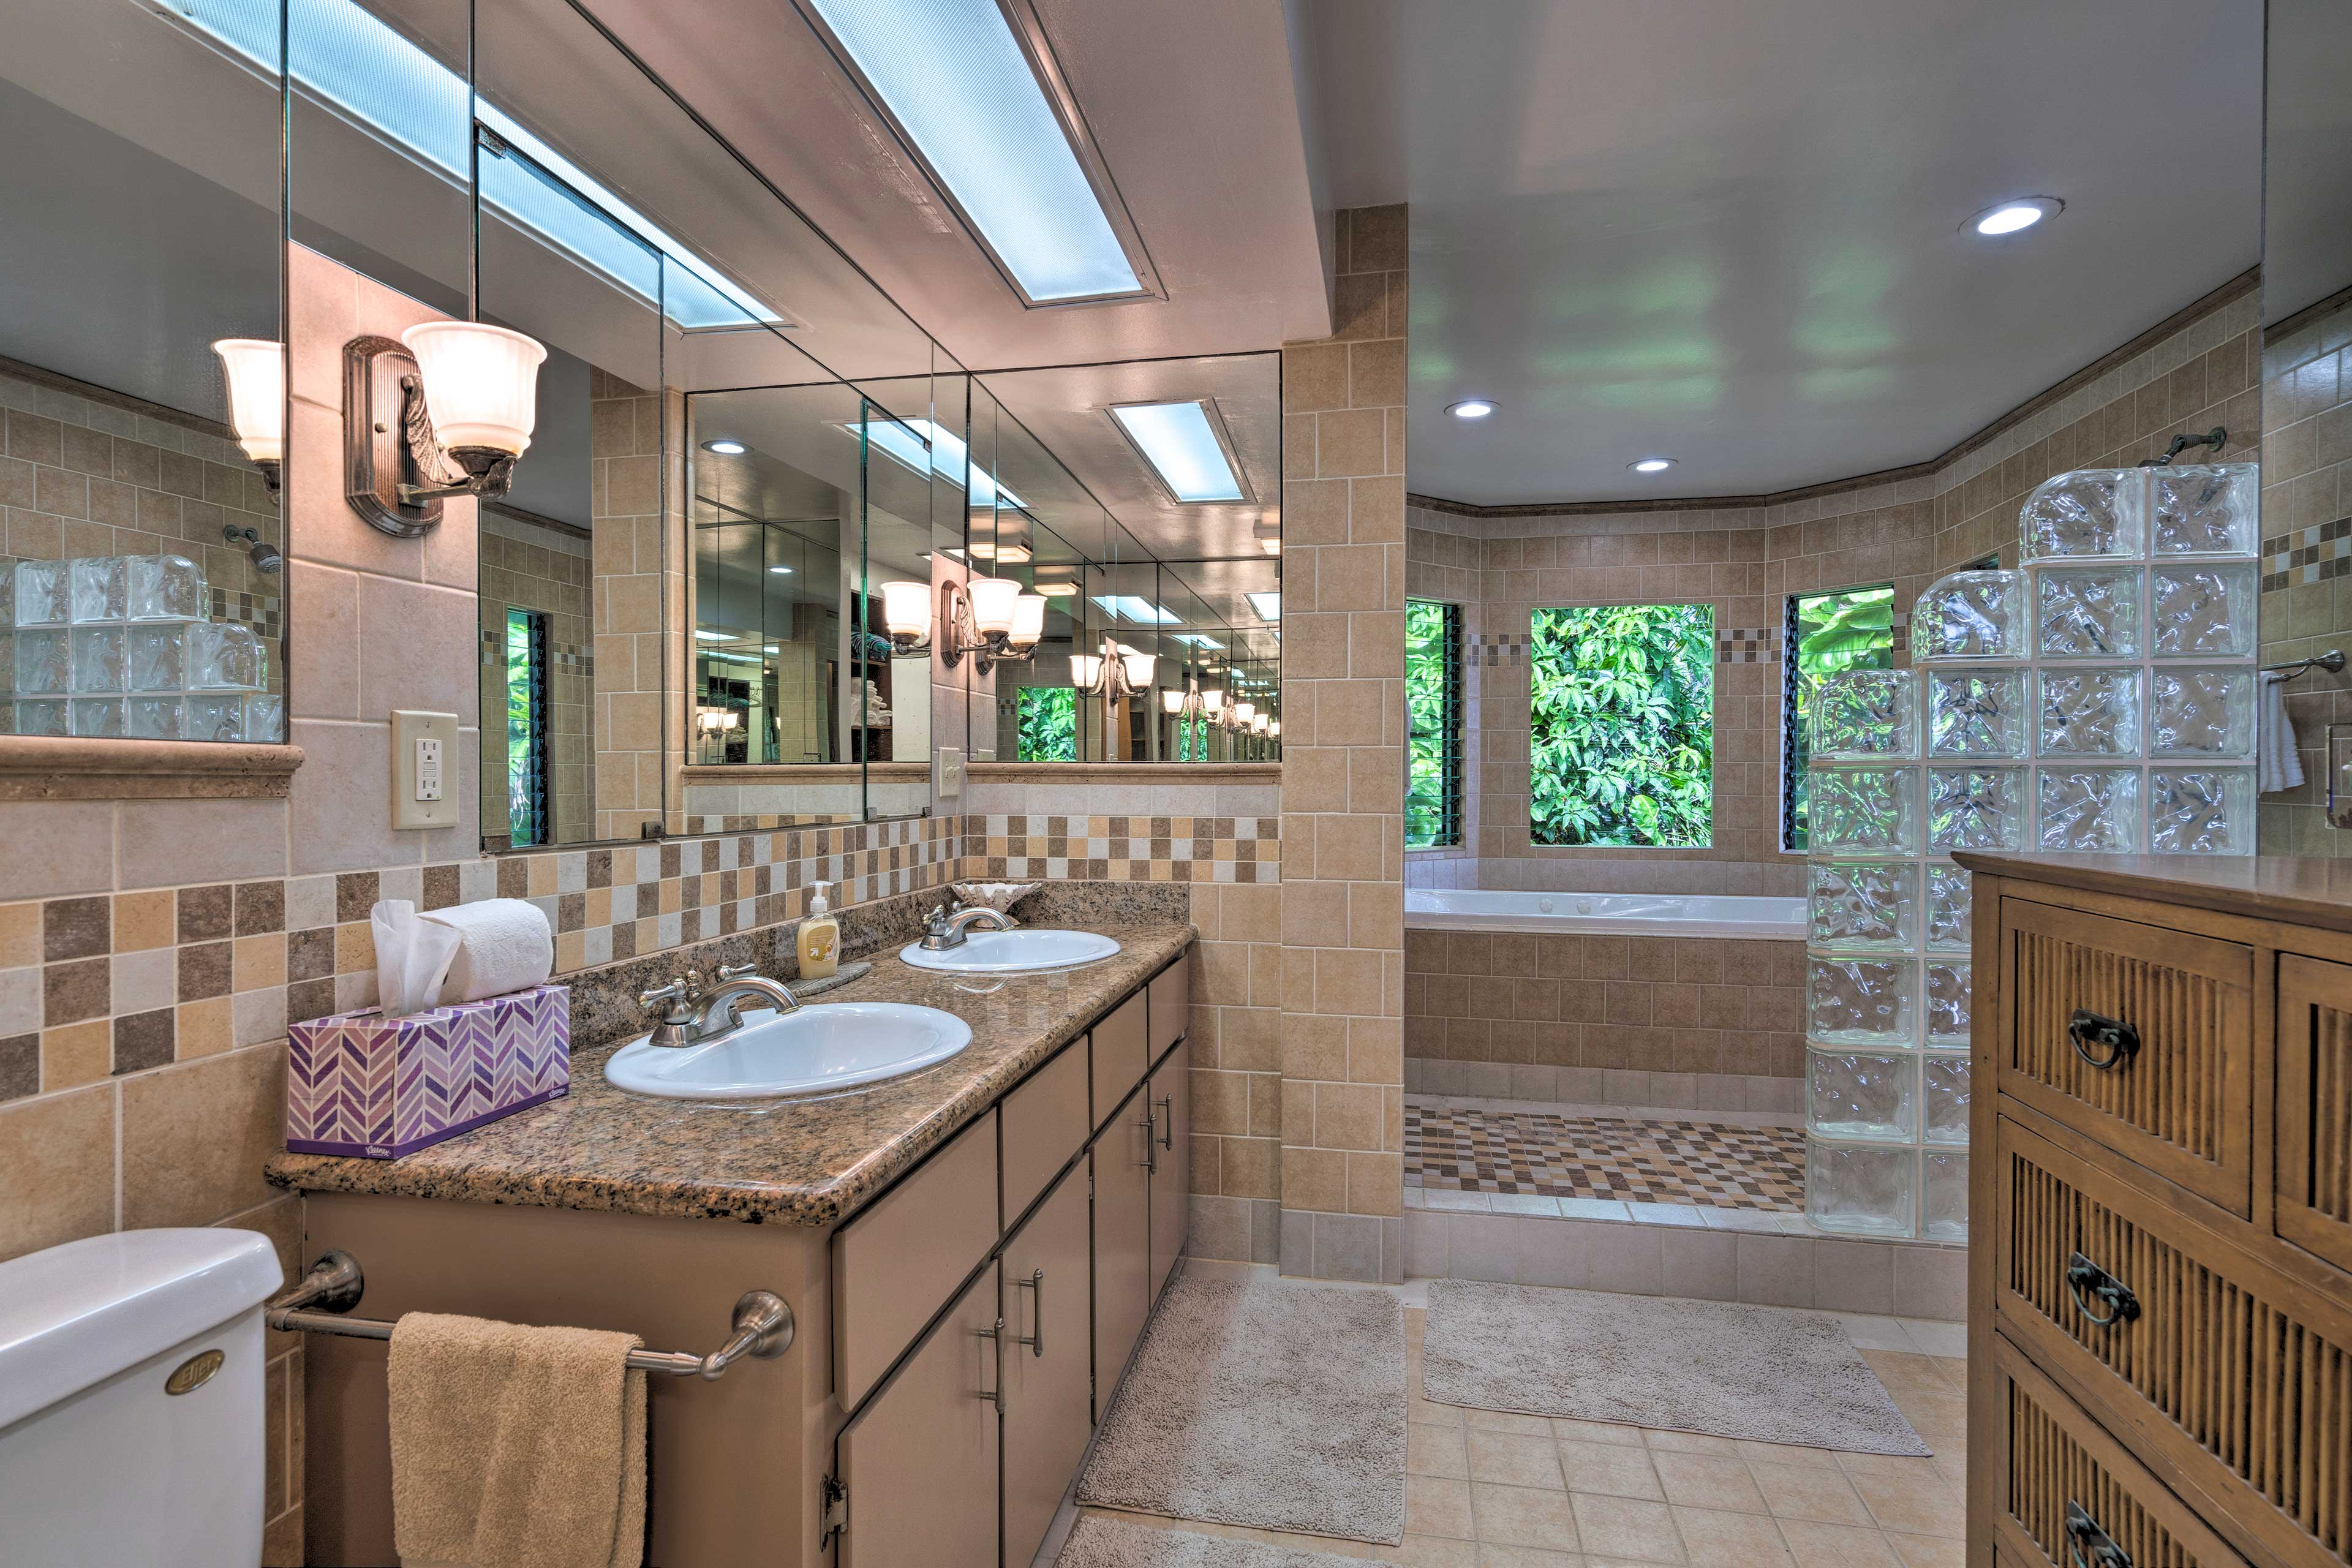 The master en-suite bathroom has plenty of room for all your toiletries.